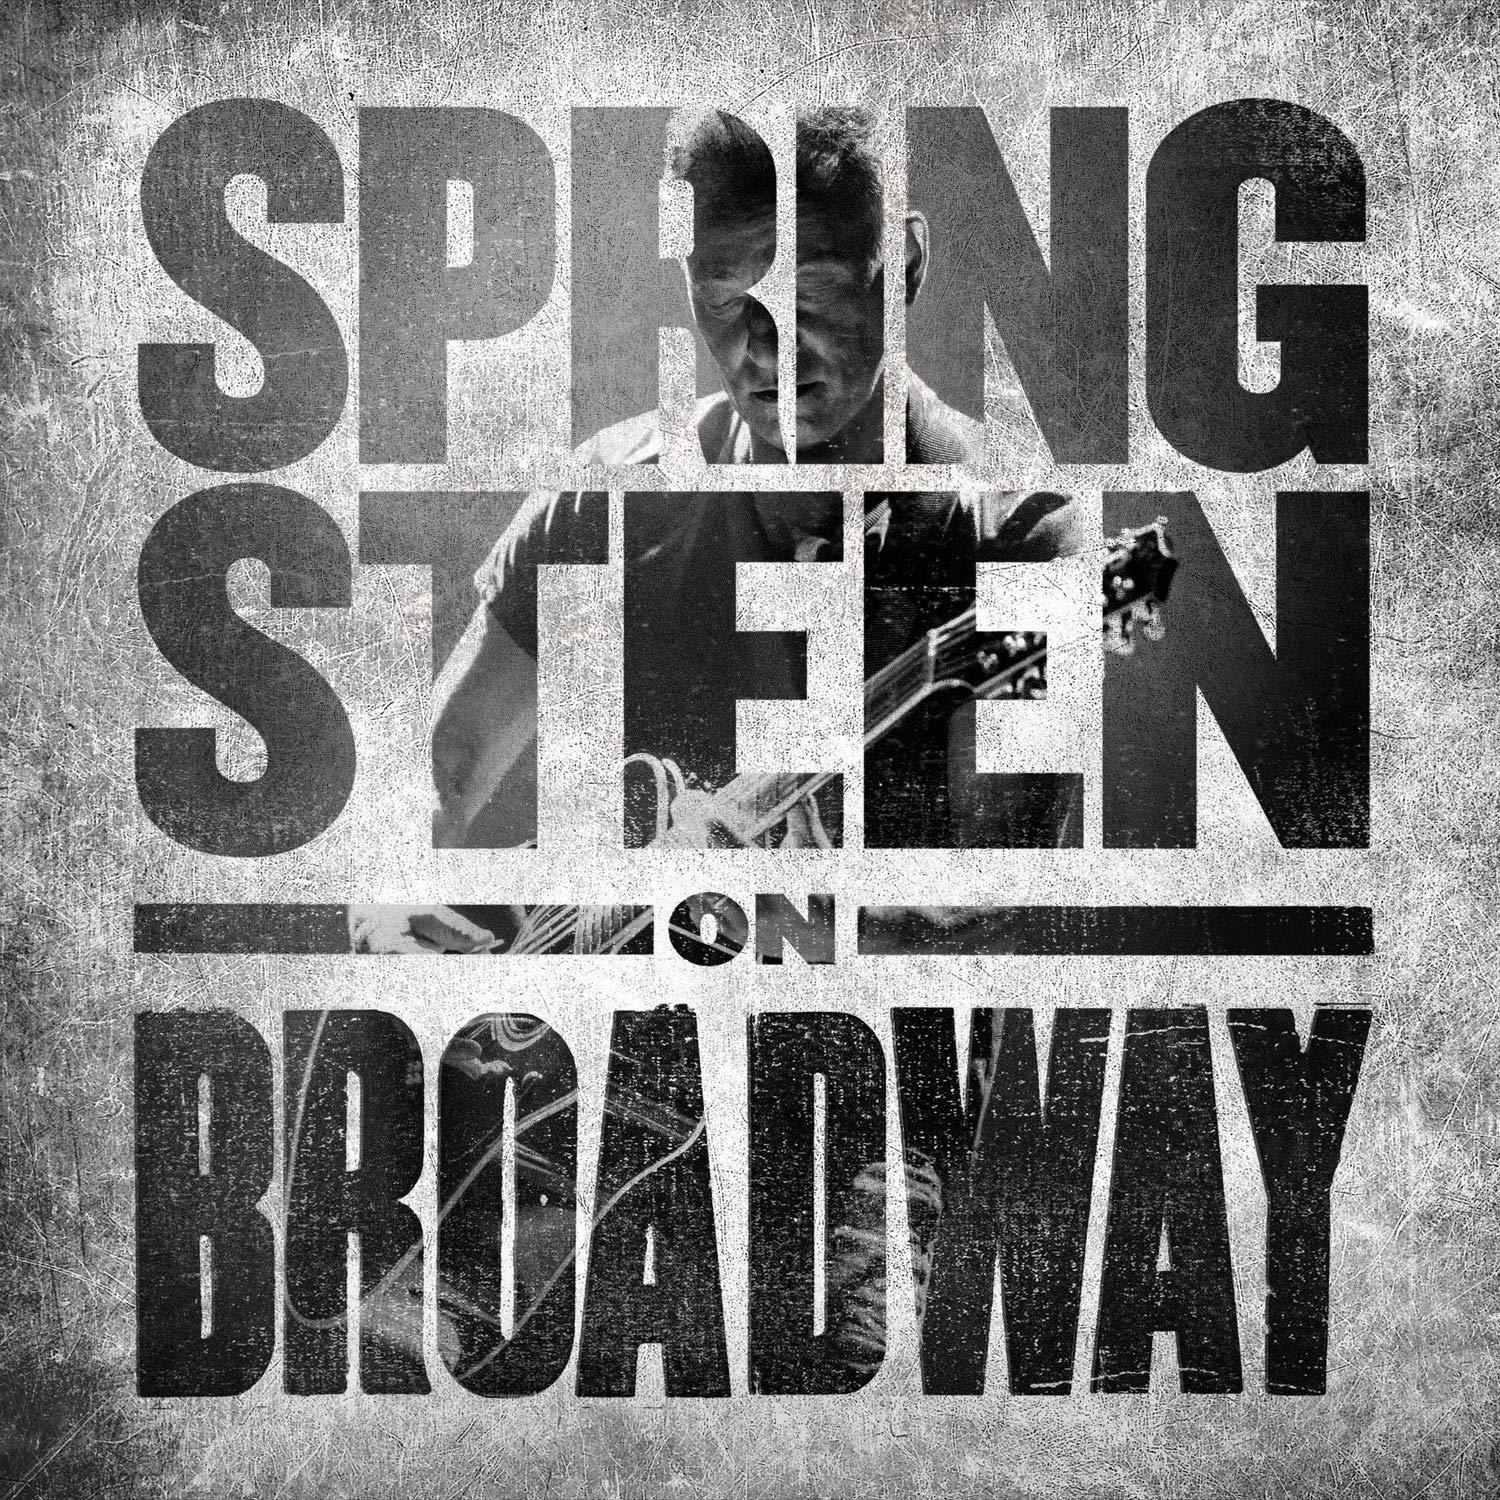 Springsteen On Broadway by Bruce Springsteen image